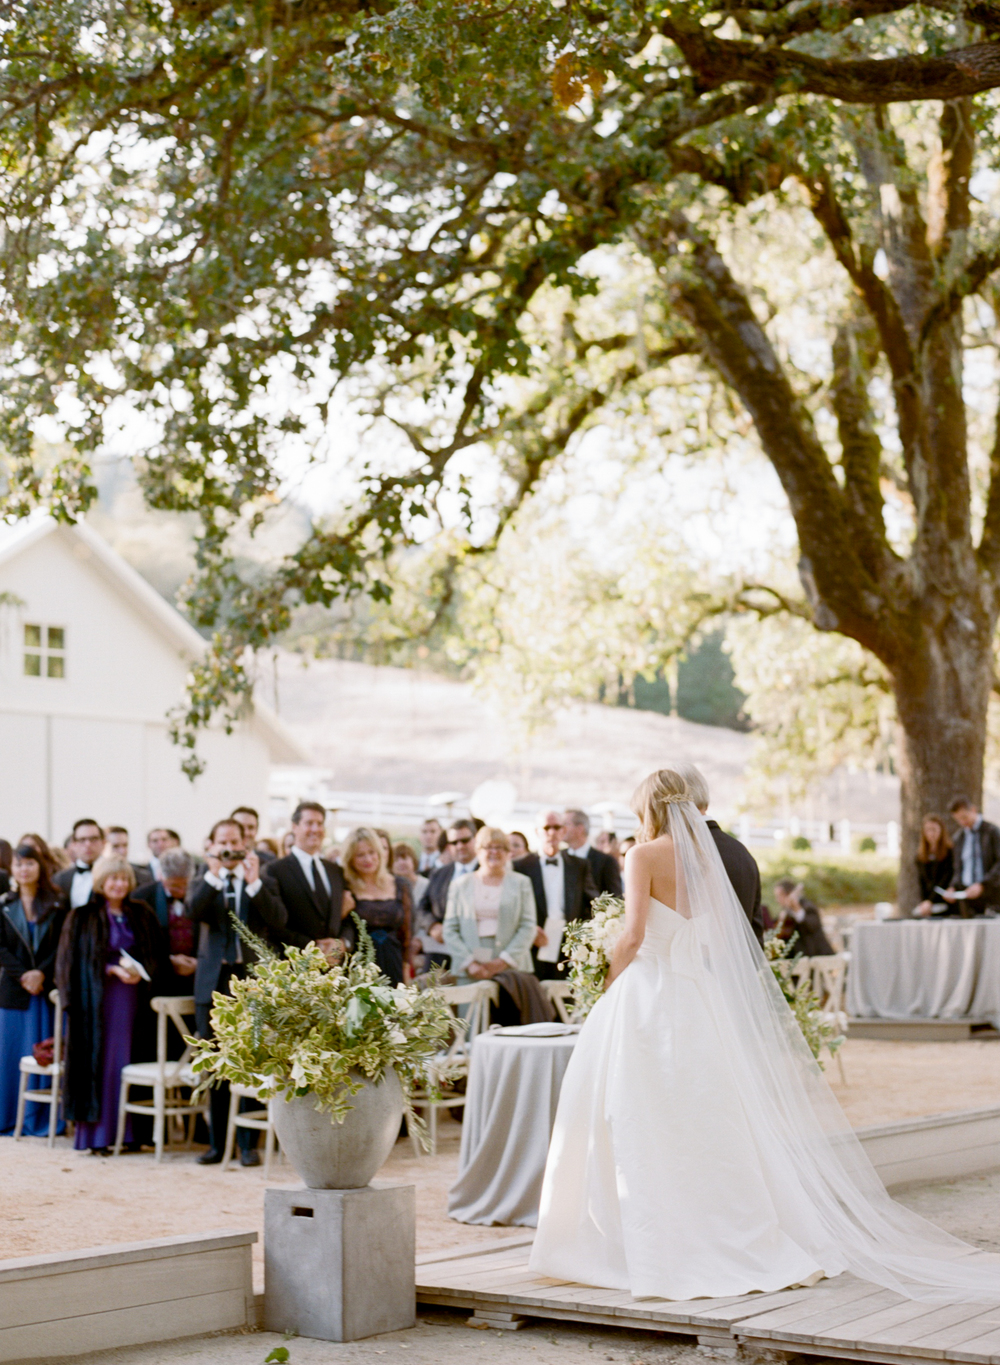 Father of the bride walks bride down aisle; Sylvie Gil Photography